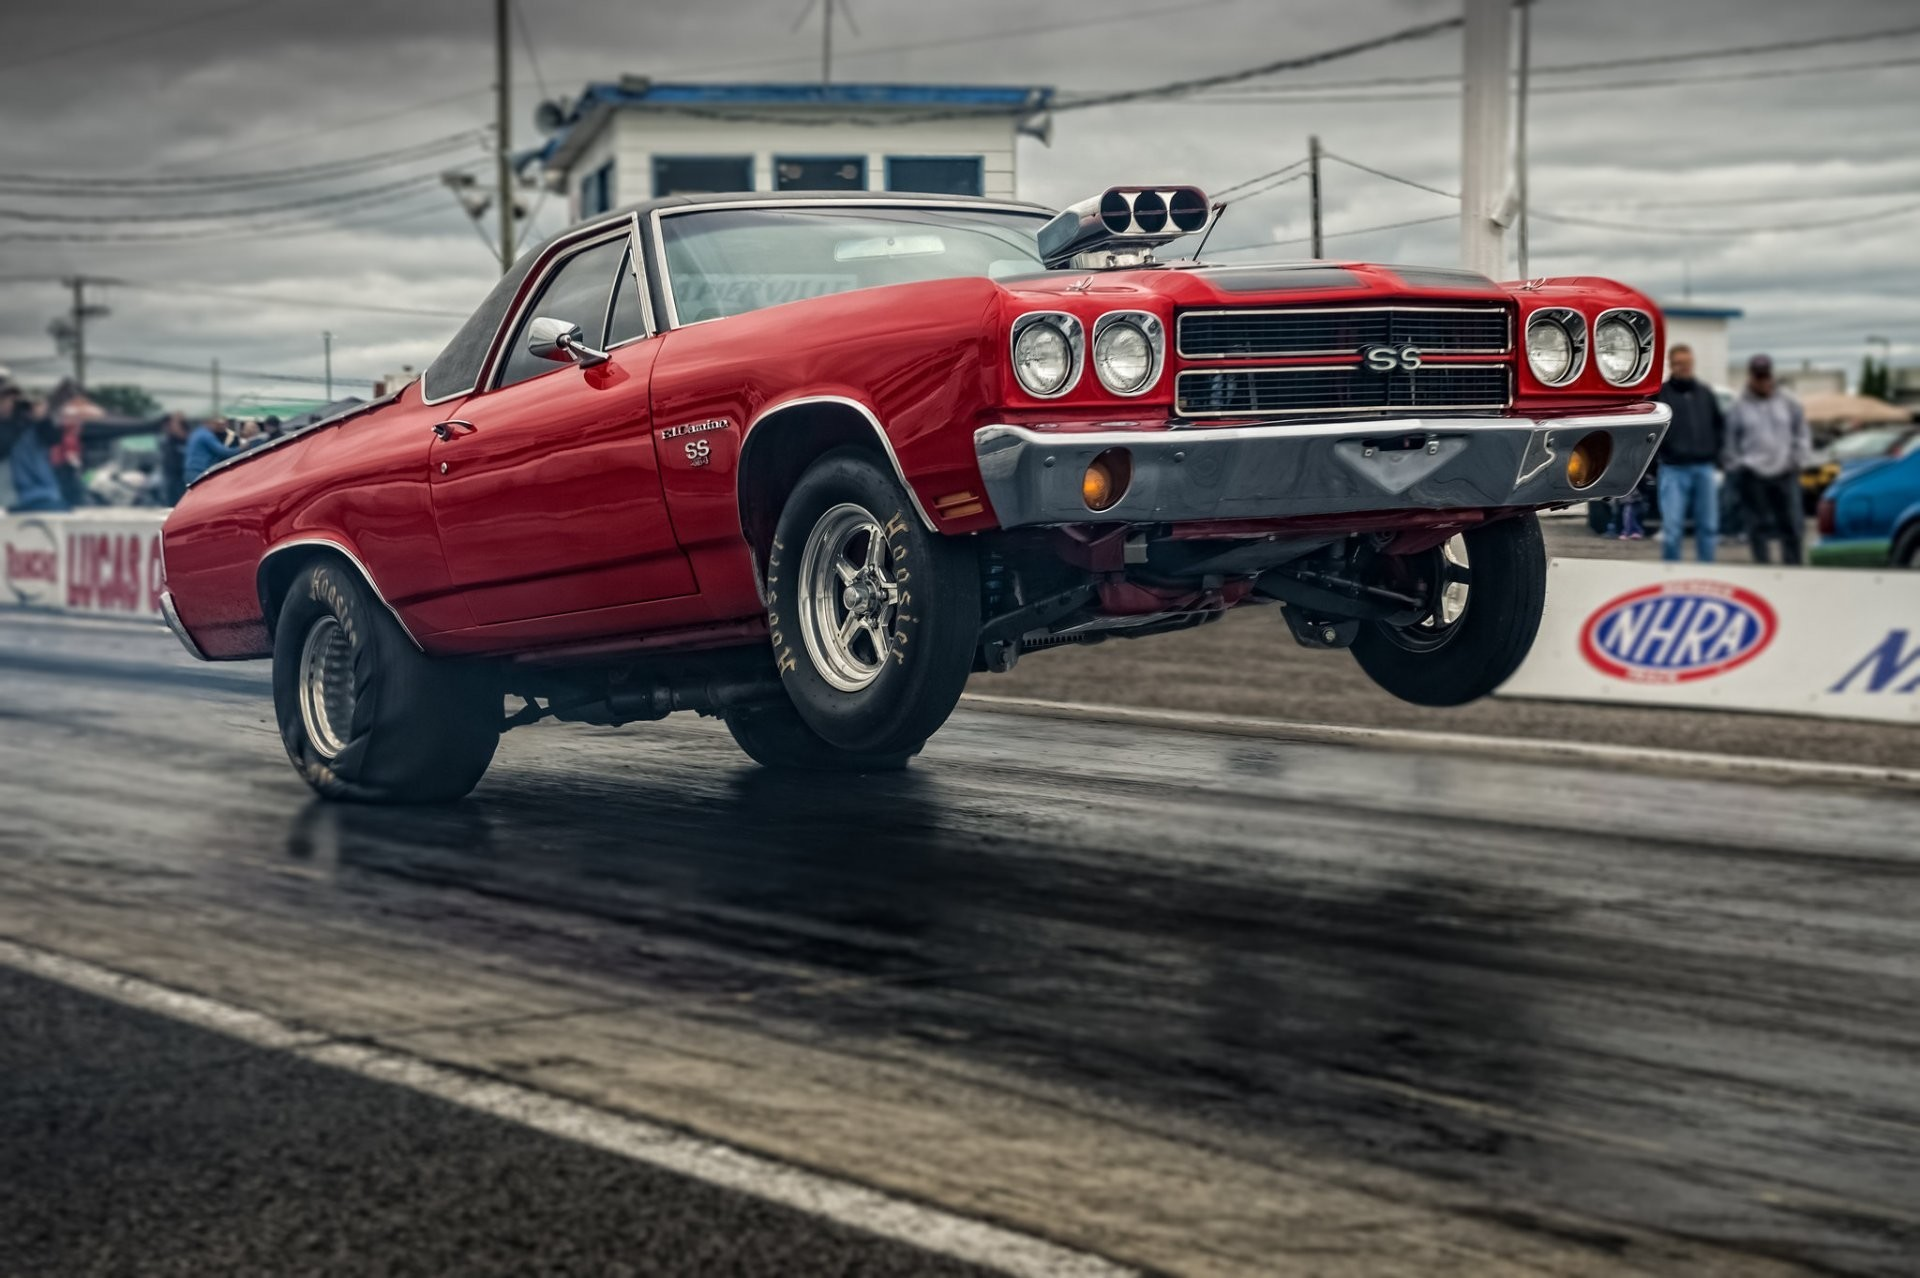 Chevy Drag Car Wallpaper 74 Images